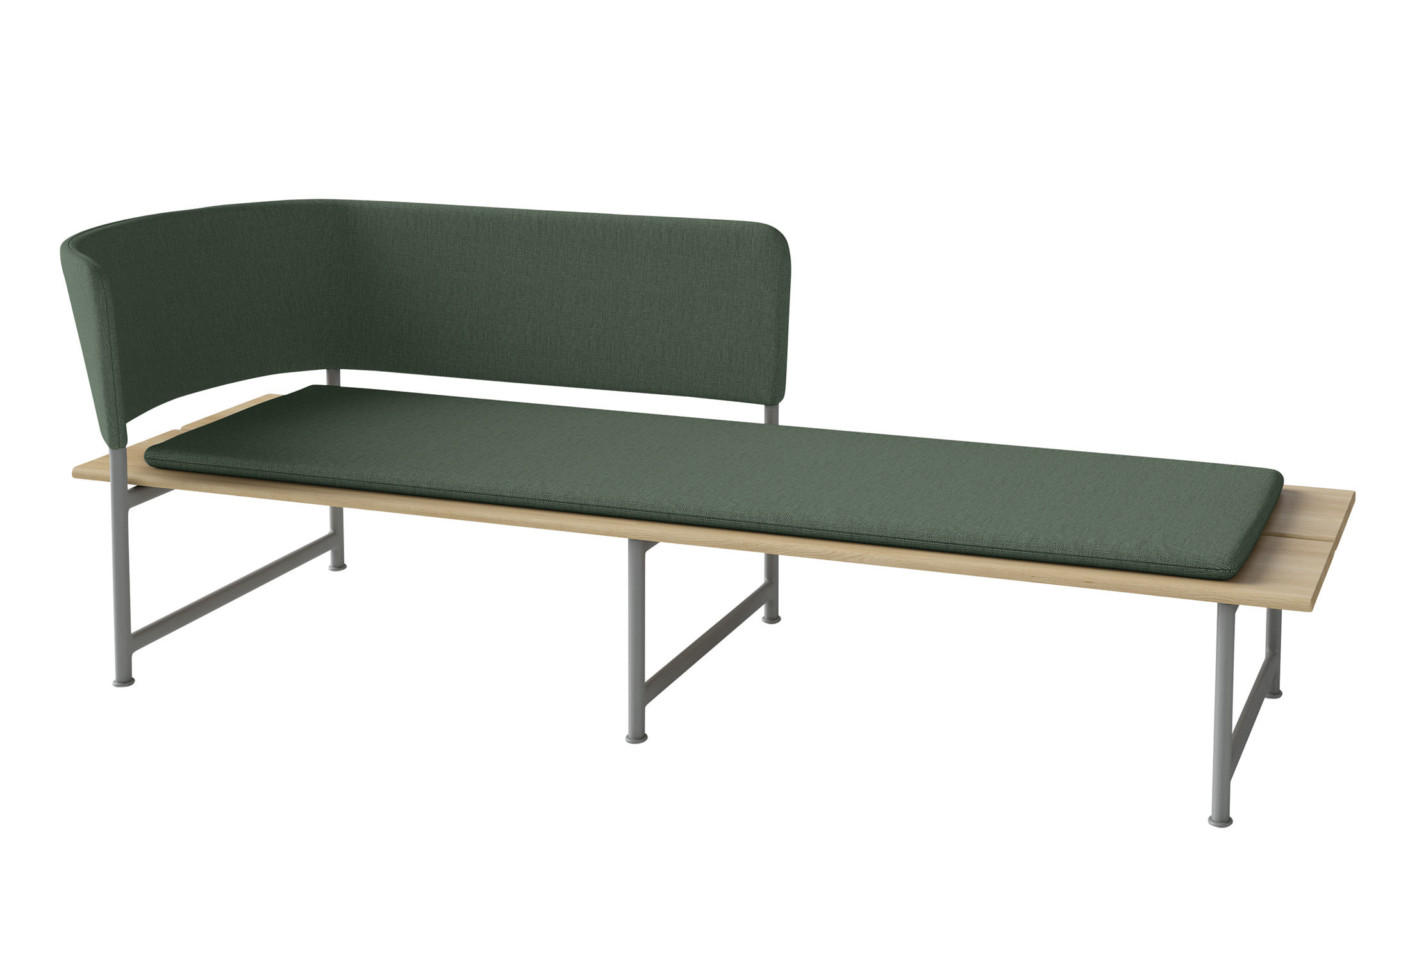 Atmosphere chaise longue by gloster furniture stylepark - Chaise longue chilienne ...